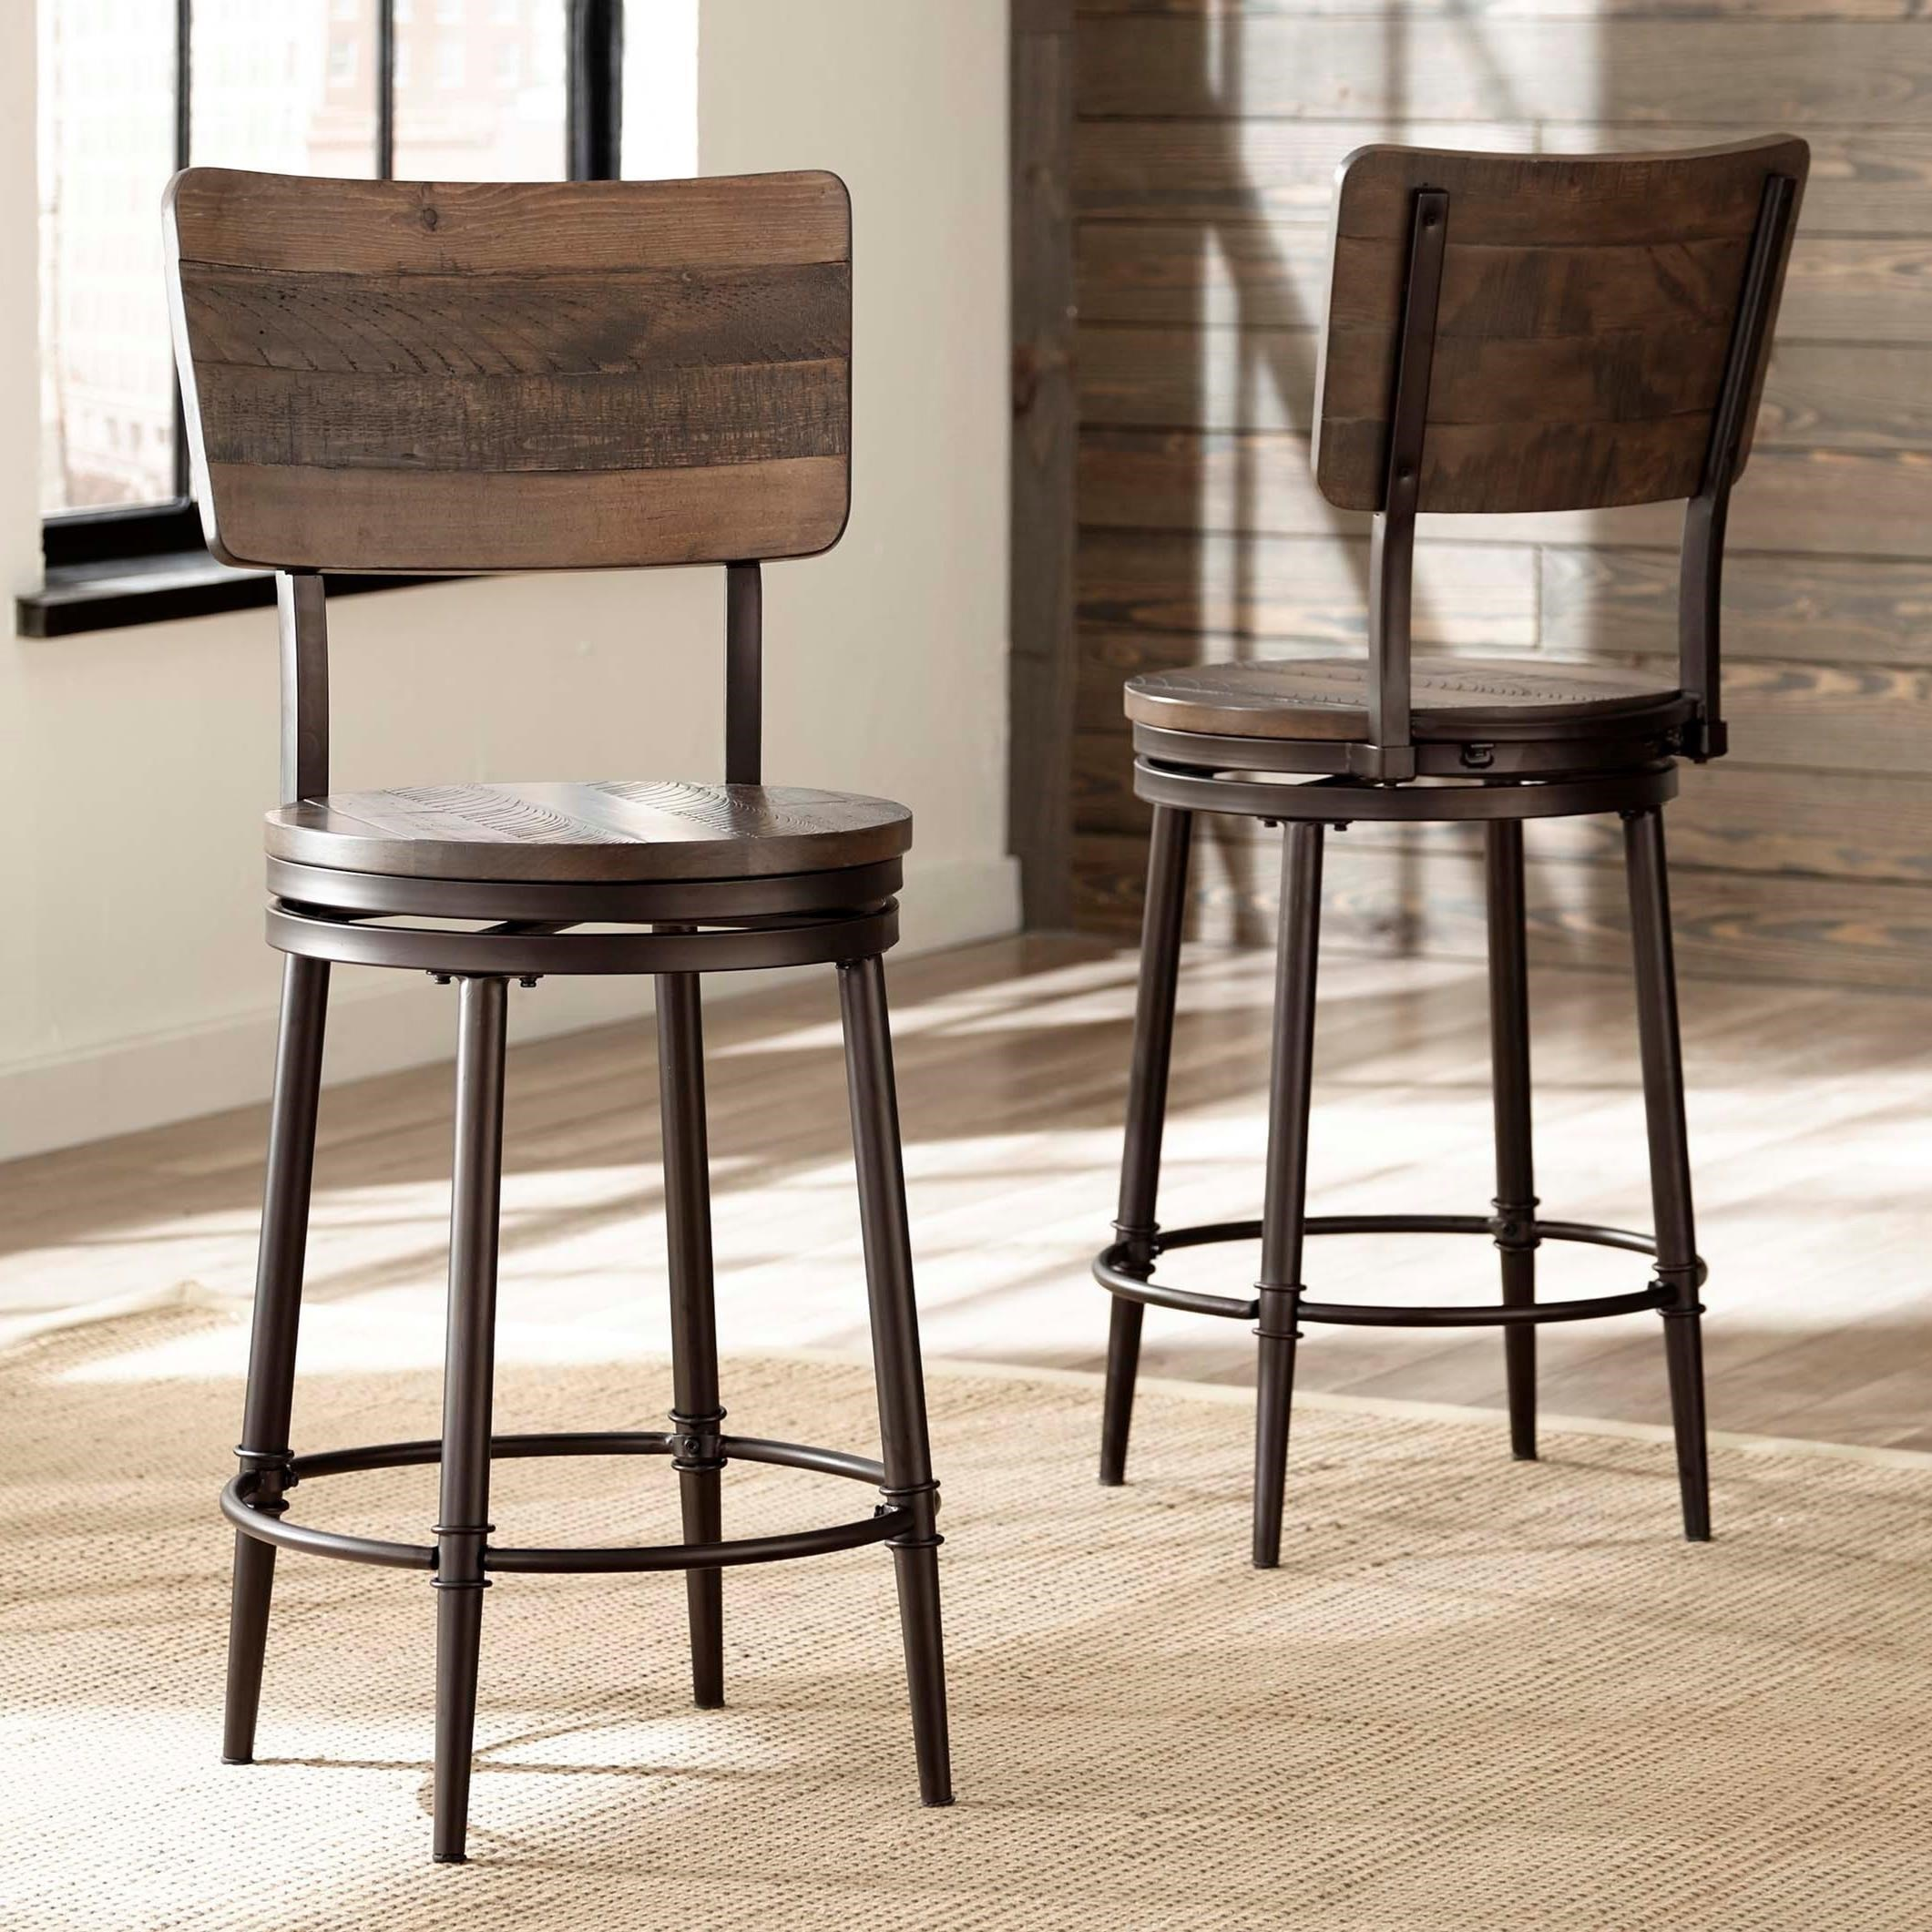 Hillsdale Metal Stools Swivel Counter Stool With Wood Back